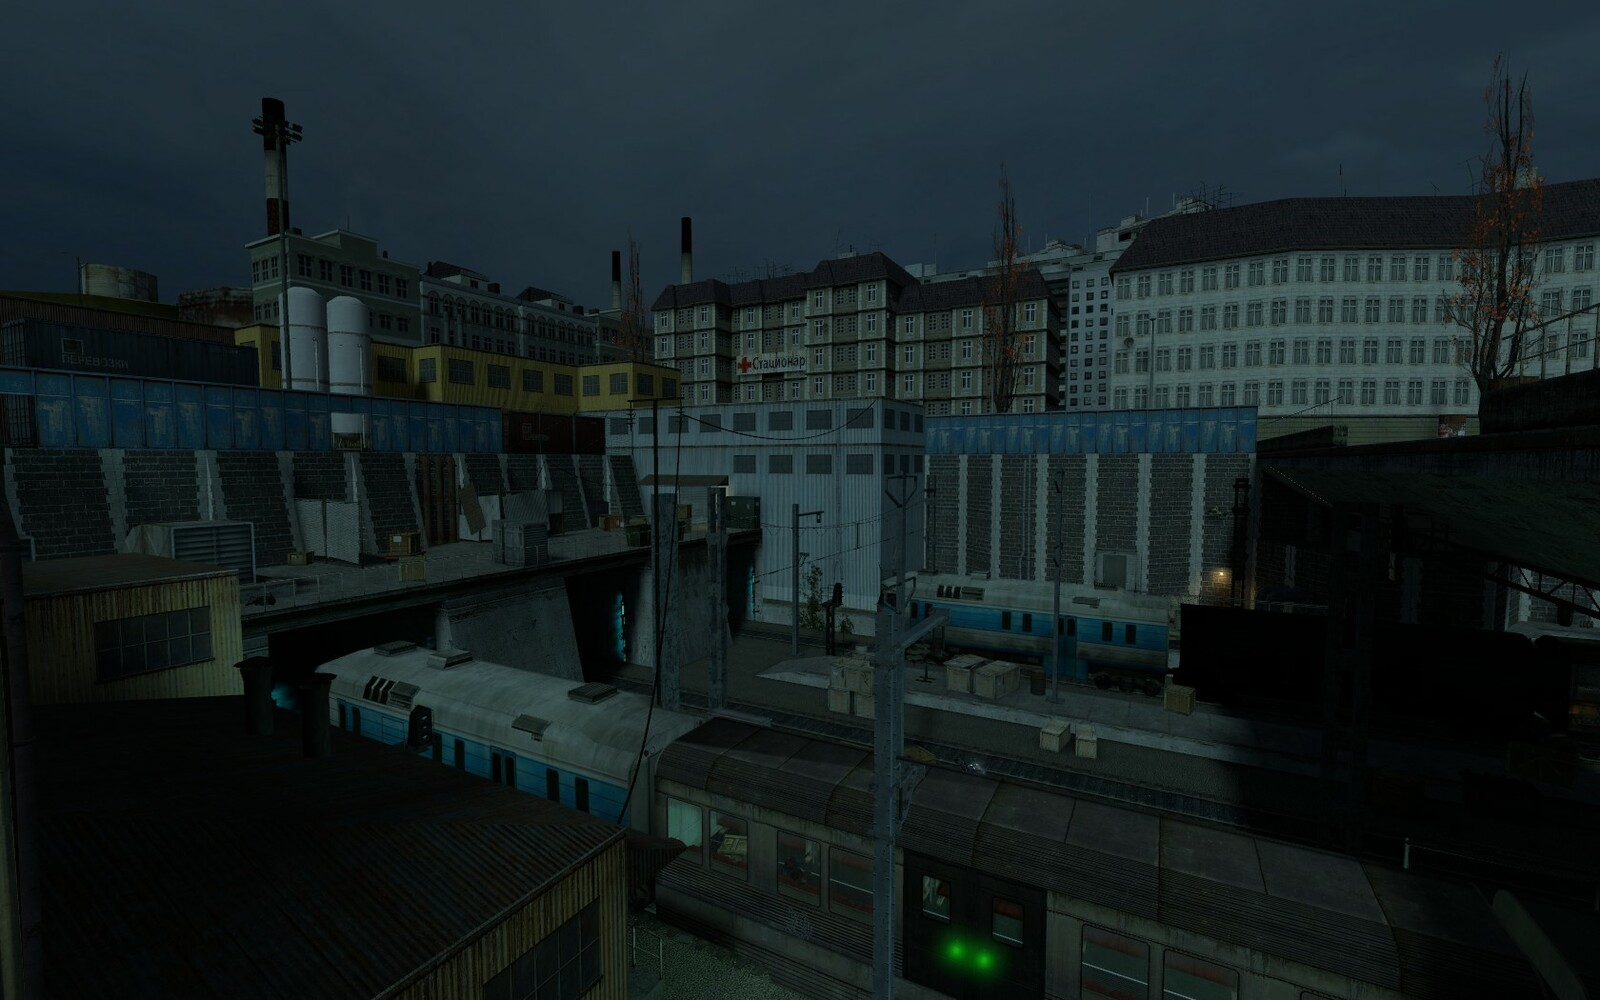 Another shot of the train yard.